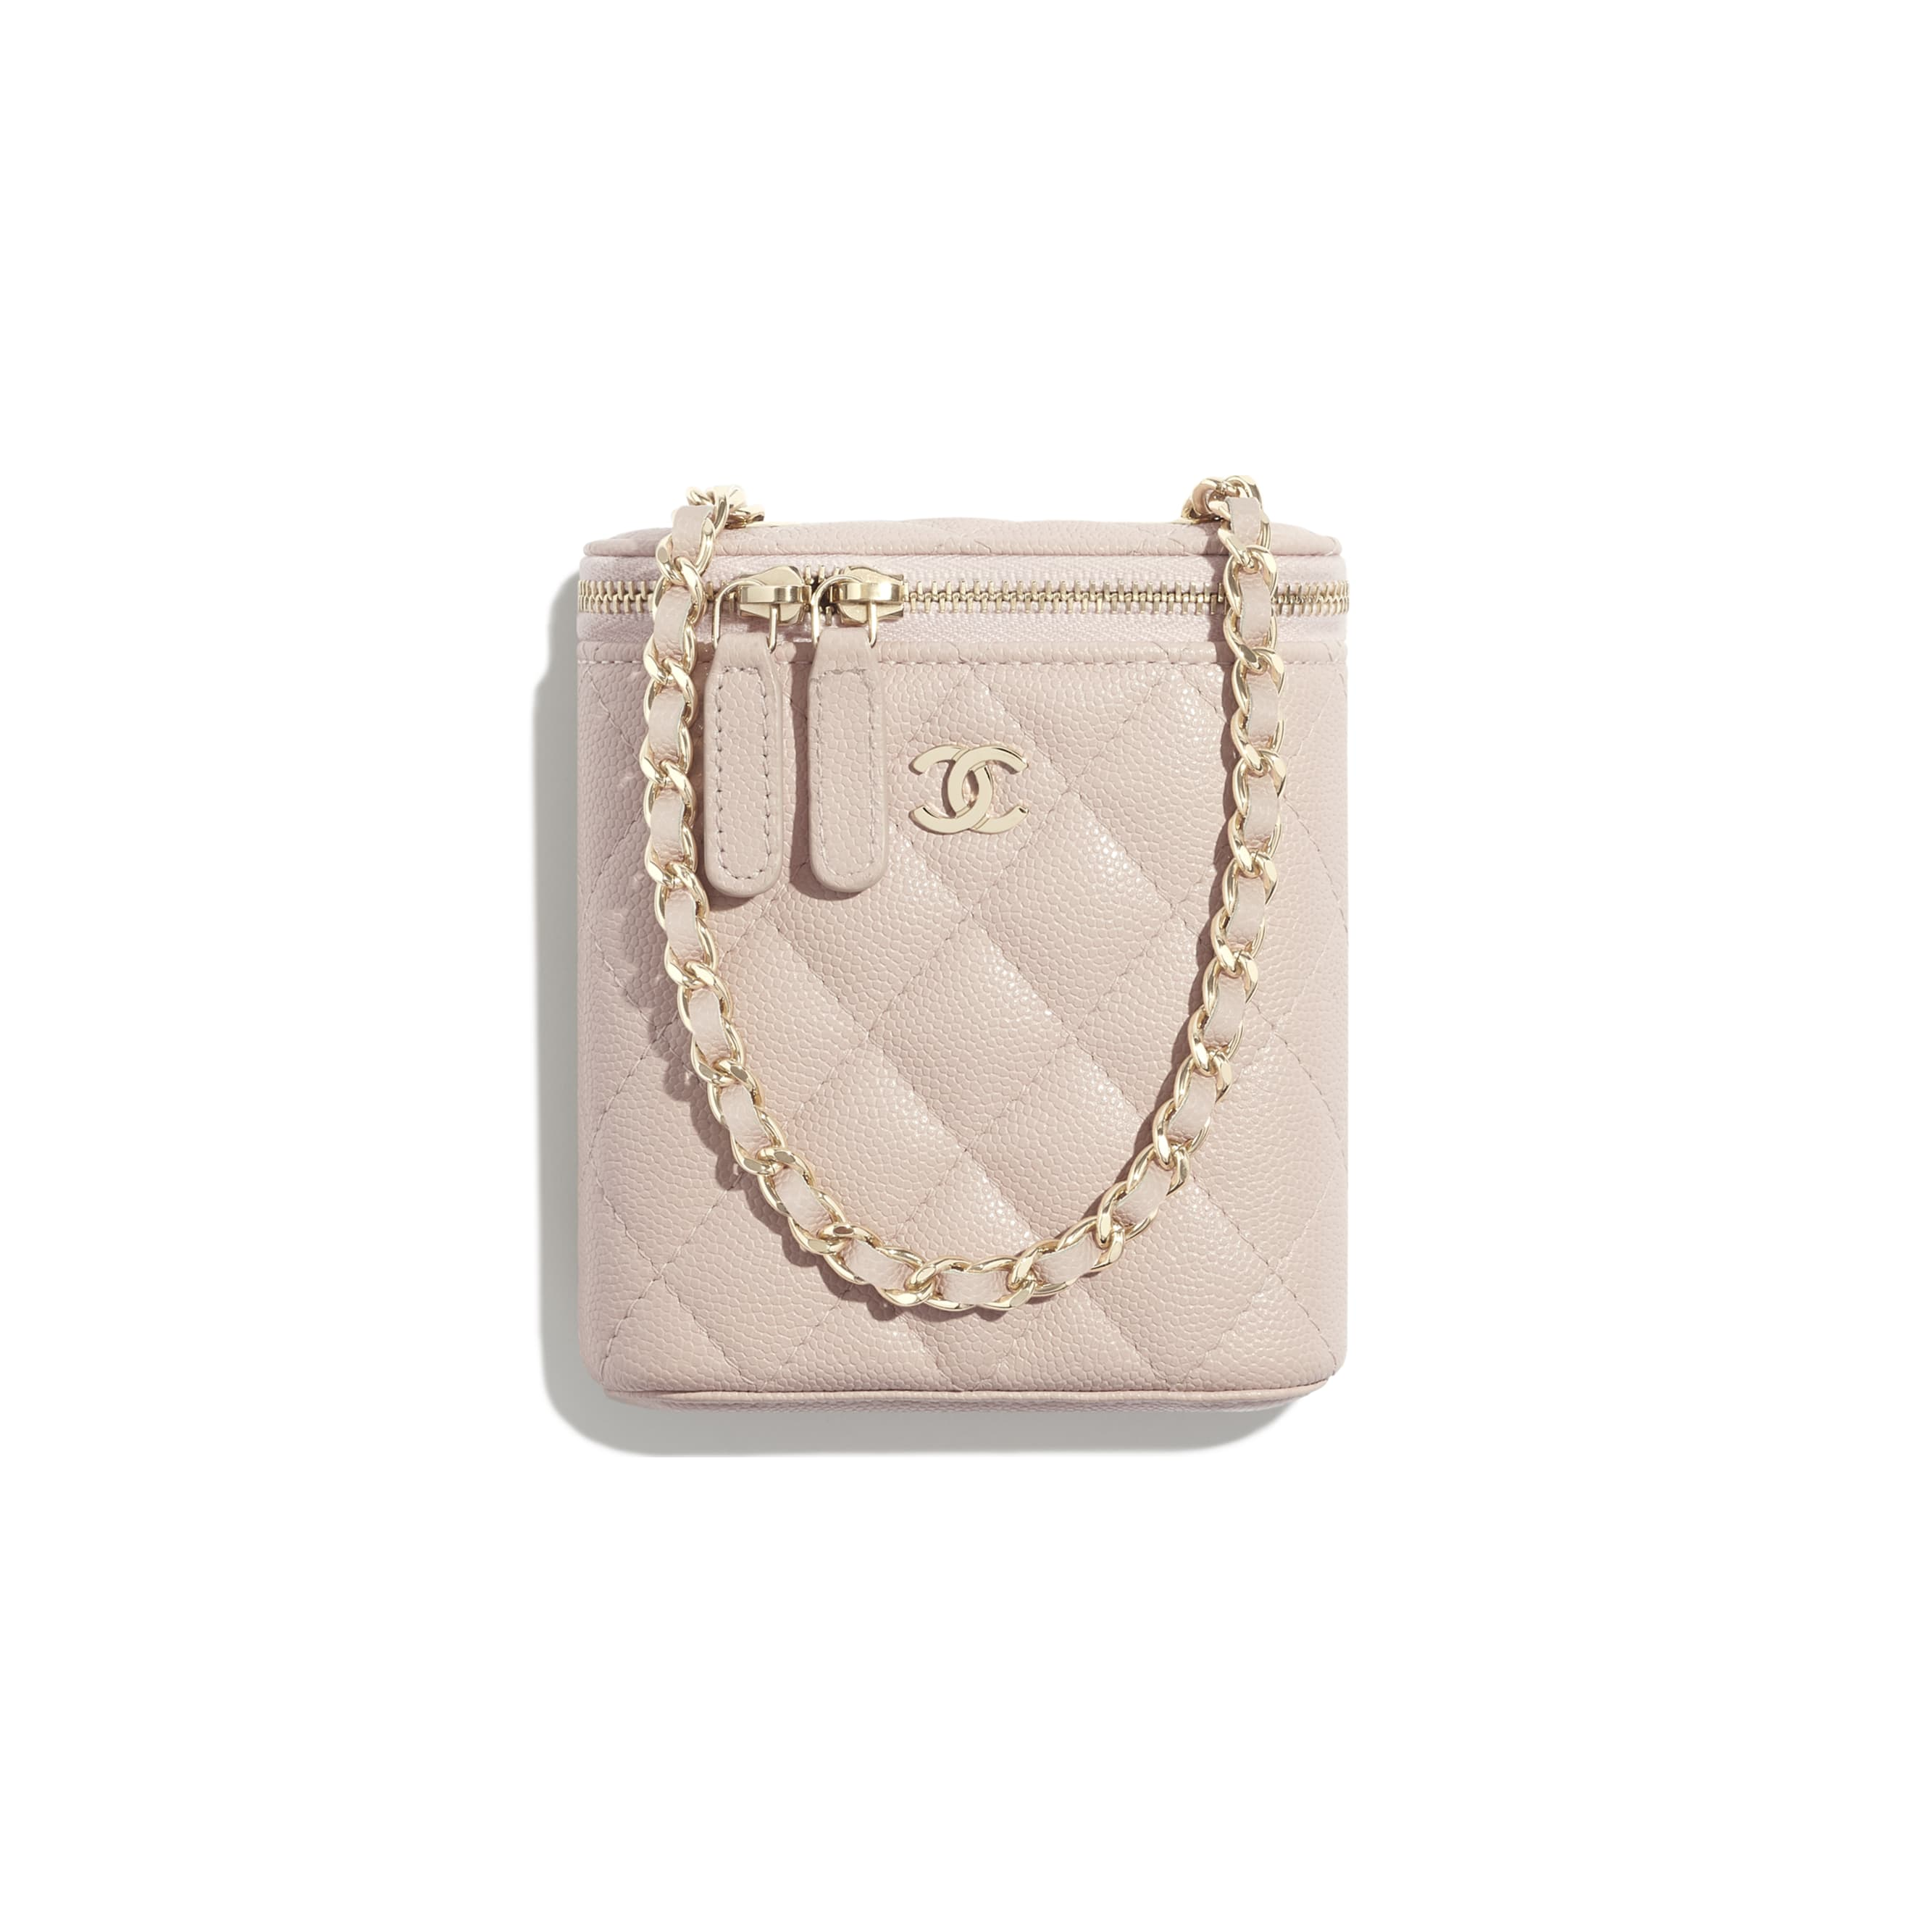 Small Vanity with Classic Chain - Pale Pink - Grained Shiny Calfskin & Gold-Tone Metal - CHANEL - Default view - see standard sized version